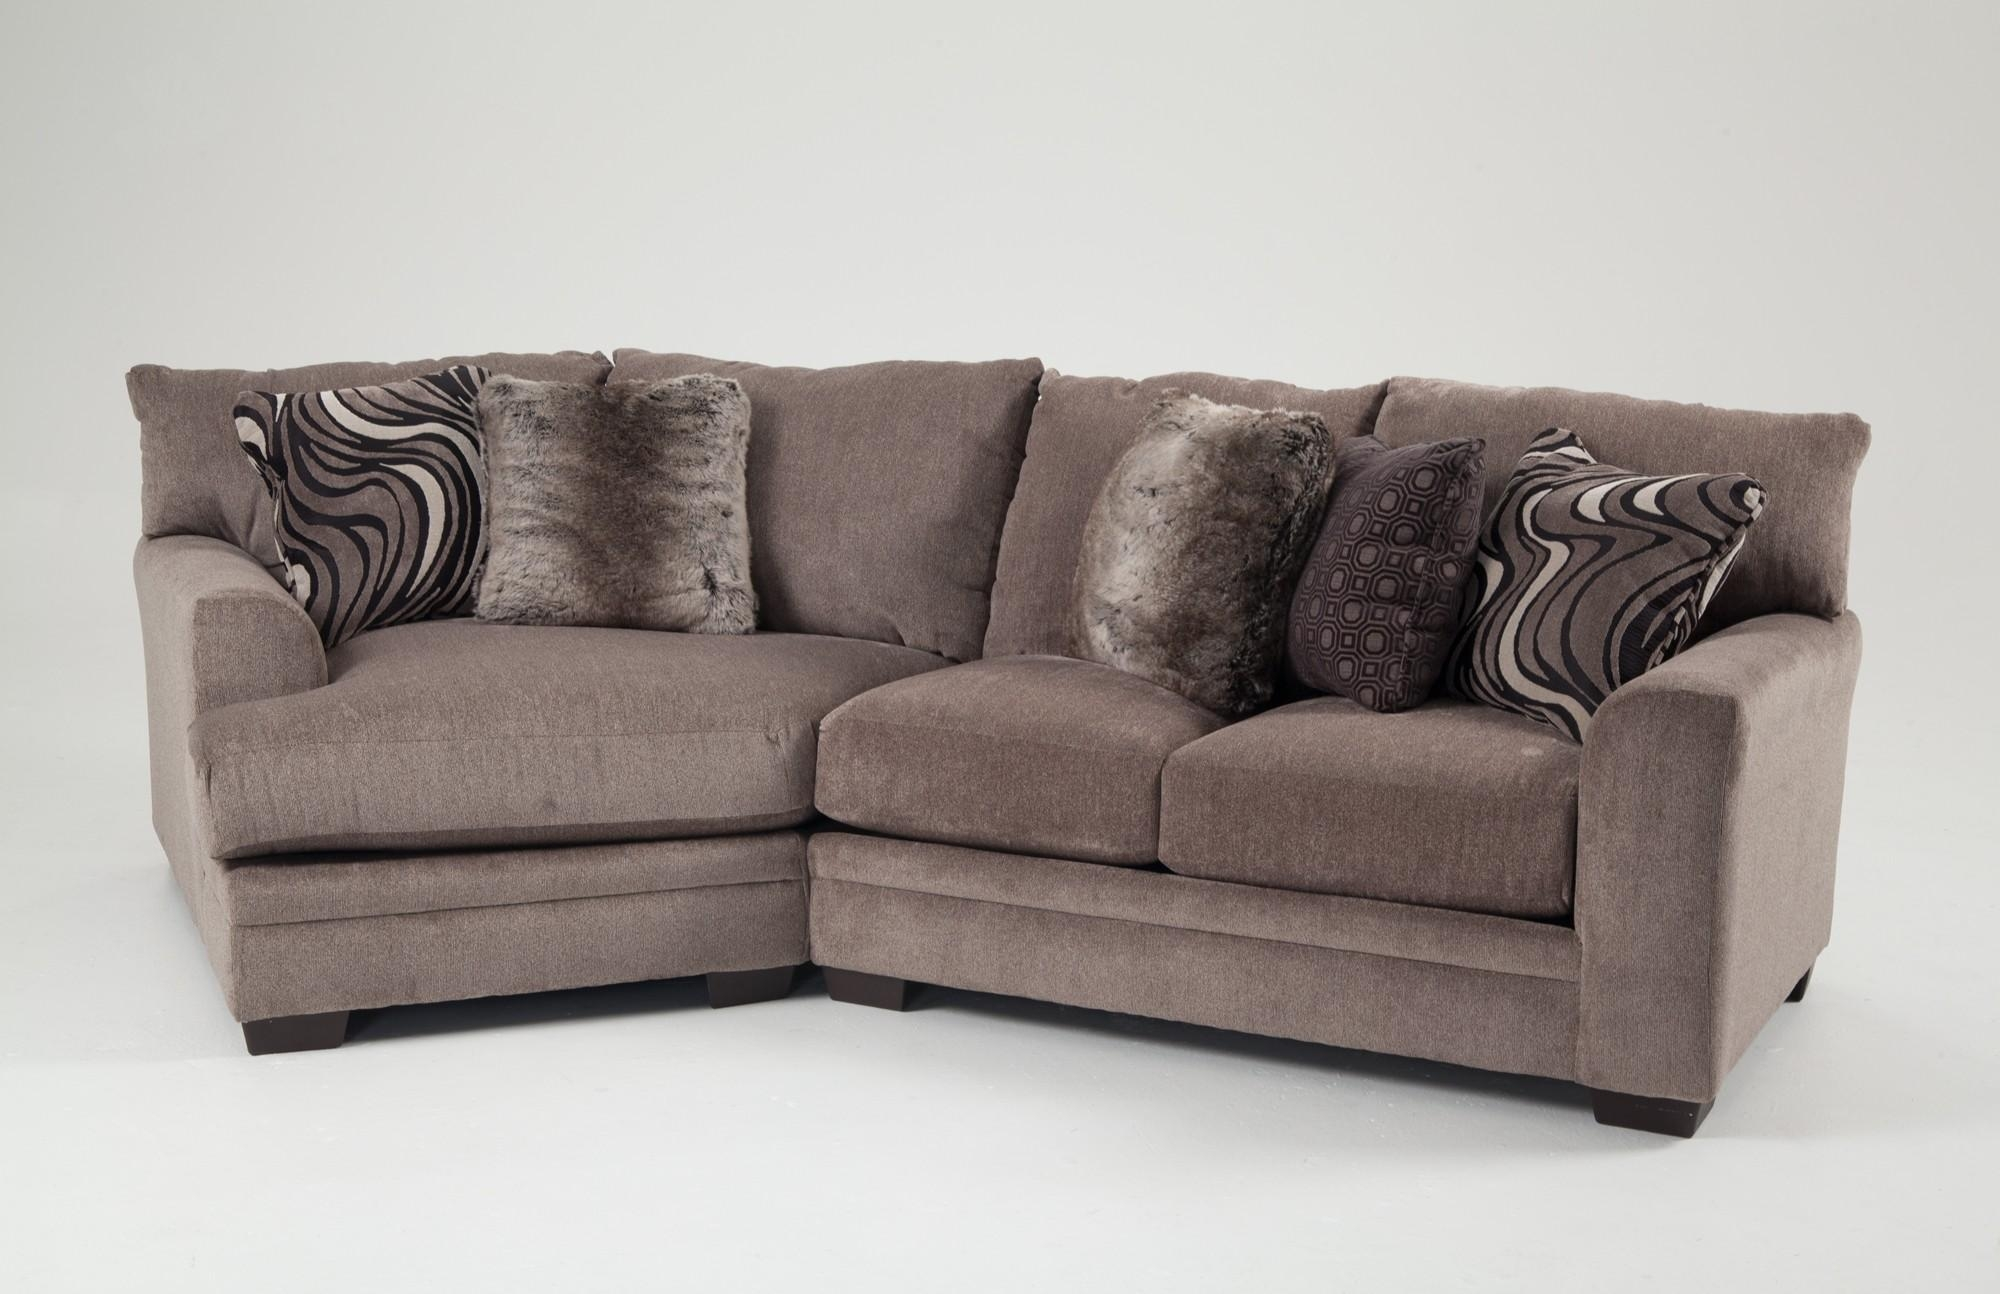 Luxe 2 Piece Sectional With Cuddler | Bob's Discount Furniture With Sectional Cuddler (Image 15 of 20)